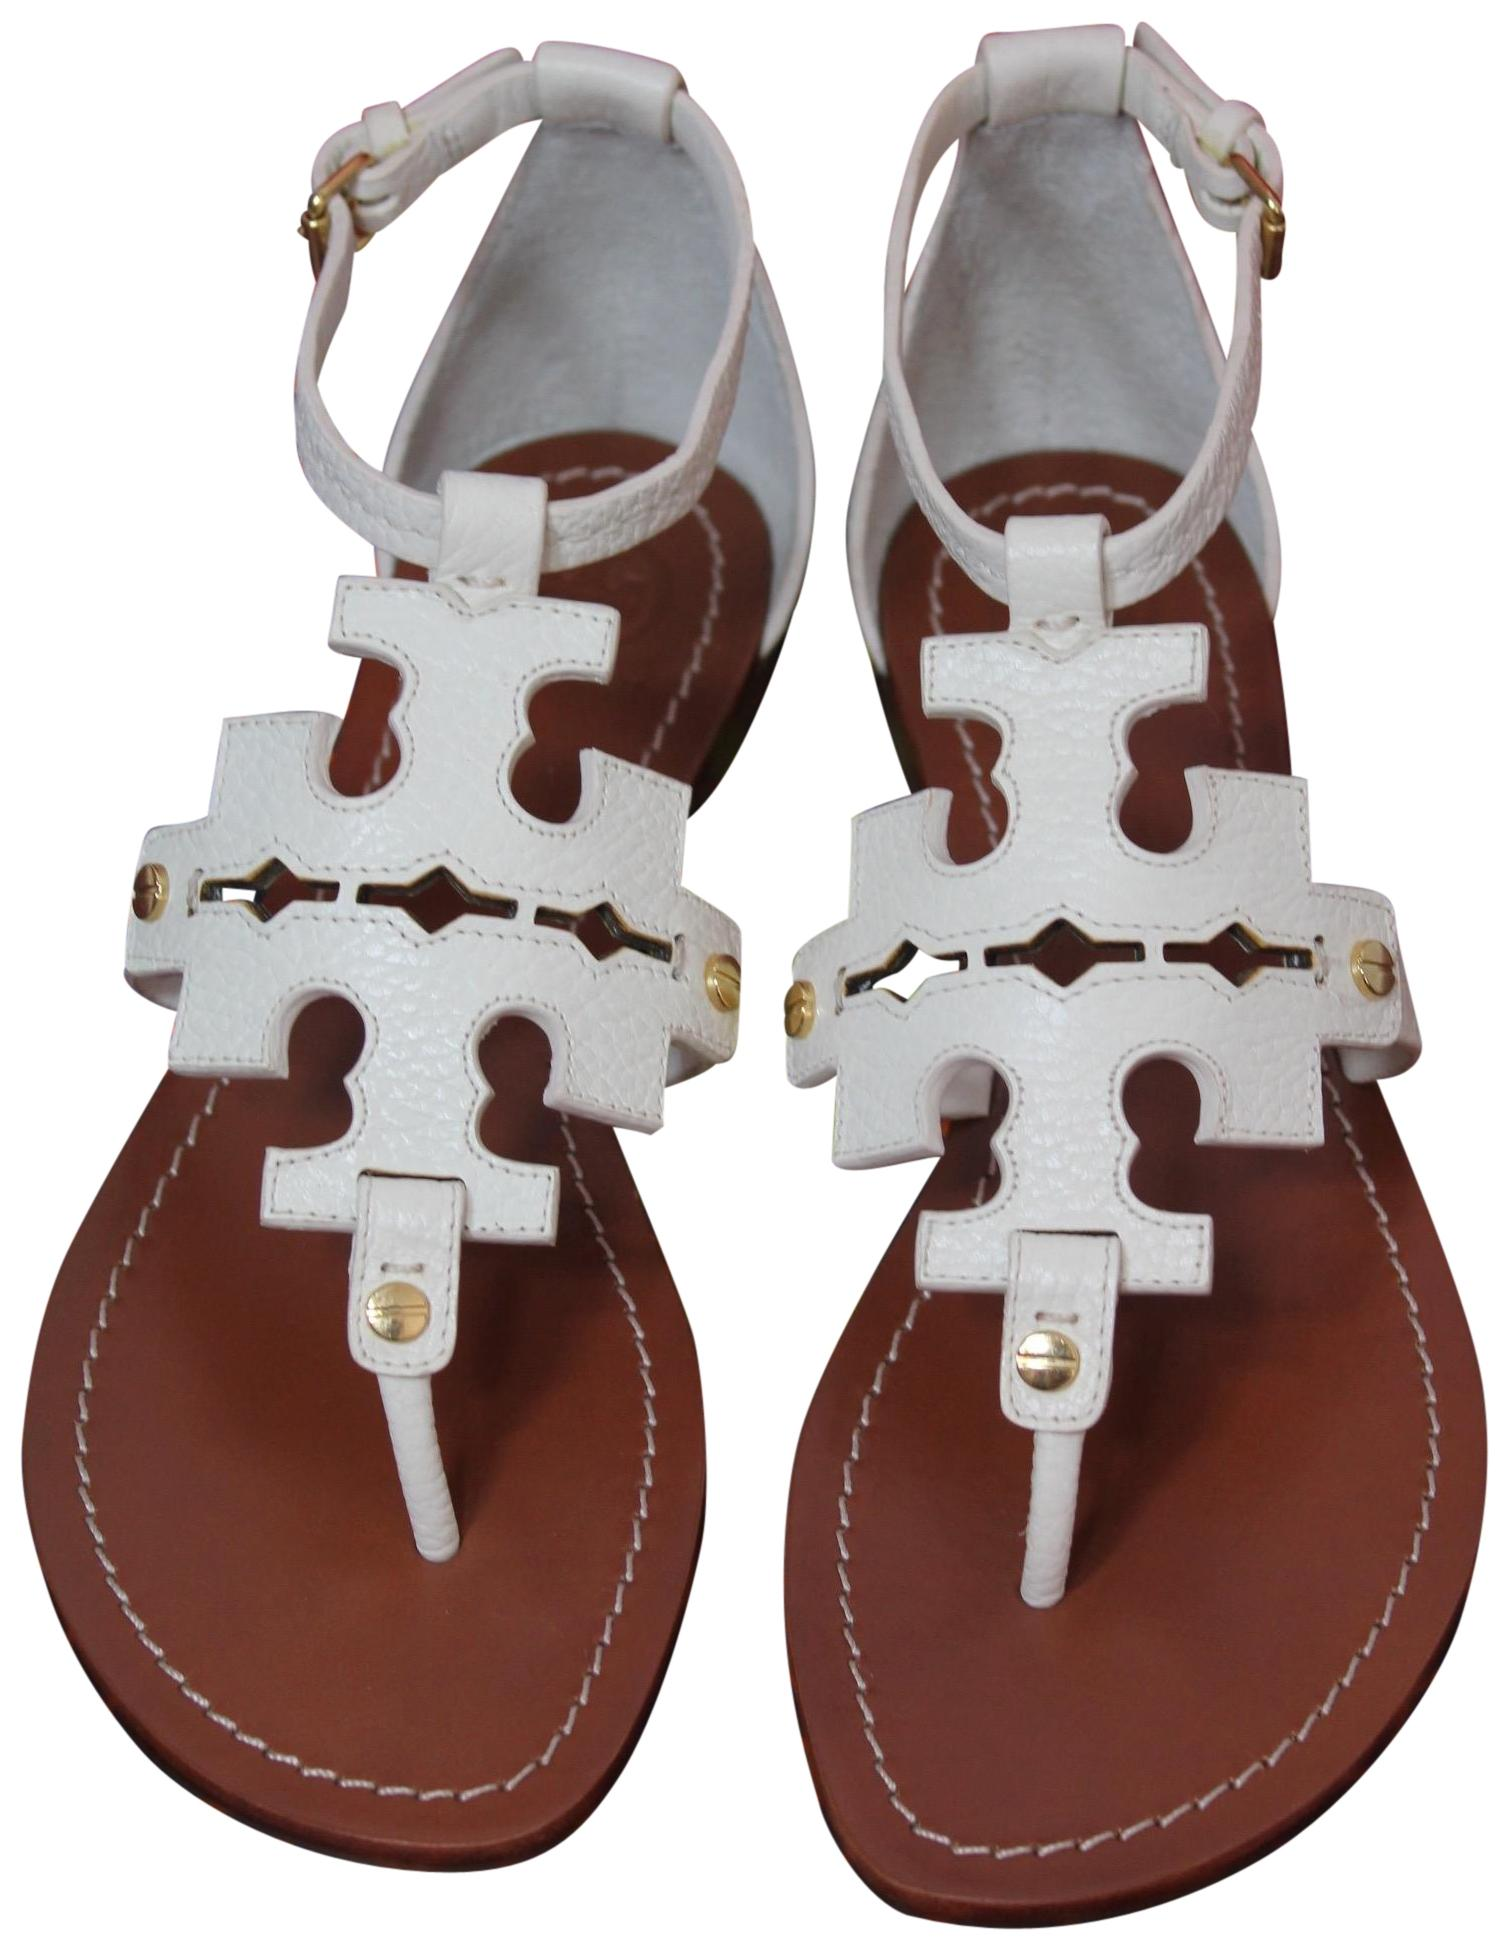 Tory Burch Ivory White New Leather Logo Flats Summer Sandals Size US 8 Regular (M, B)